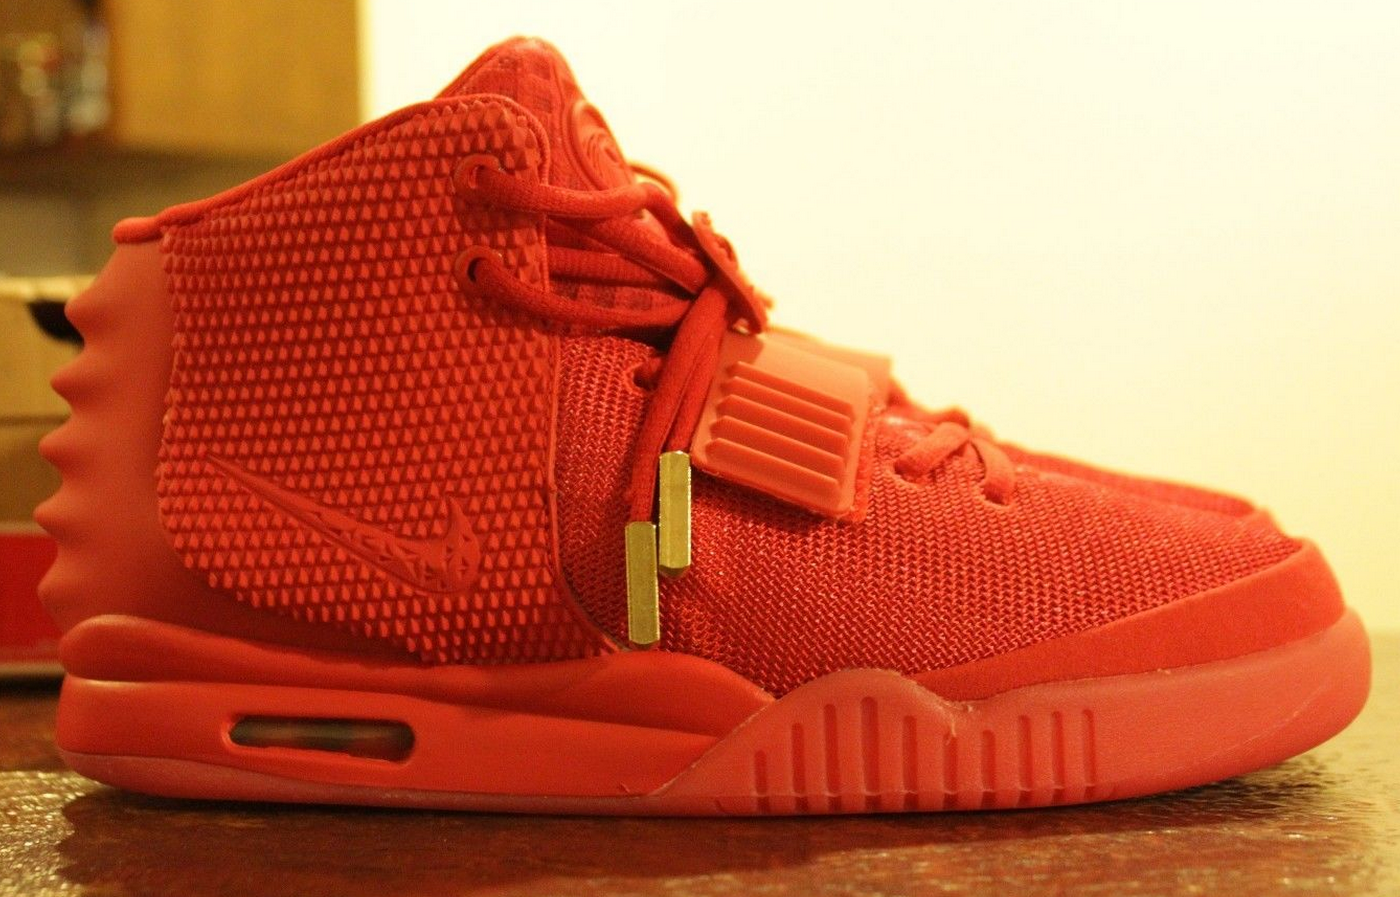 9edf0d0b5a4c6 Kanye West s Red Octobers